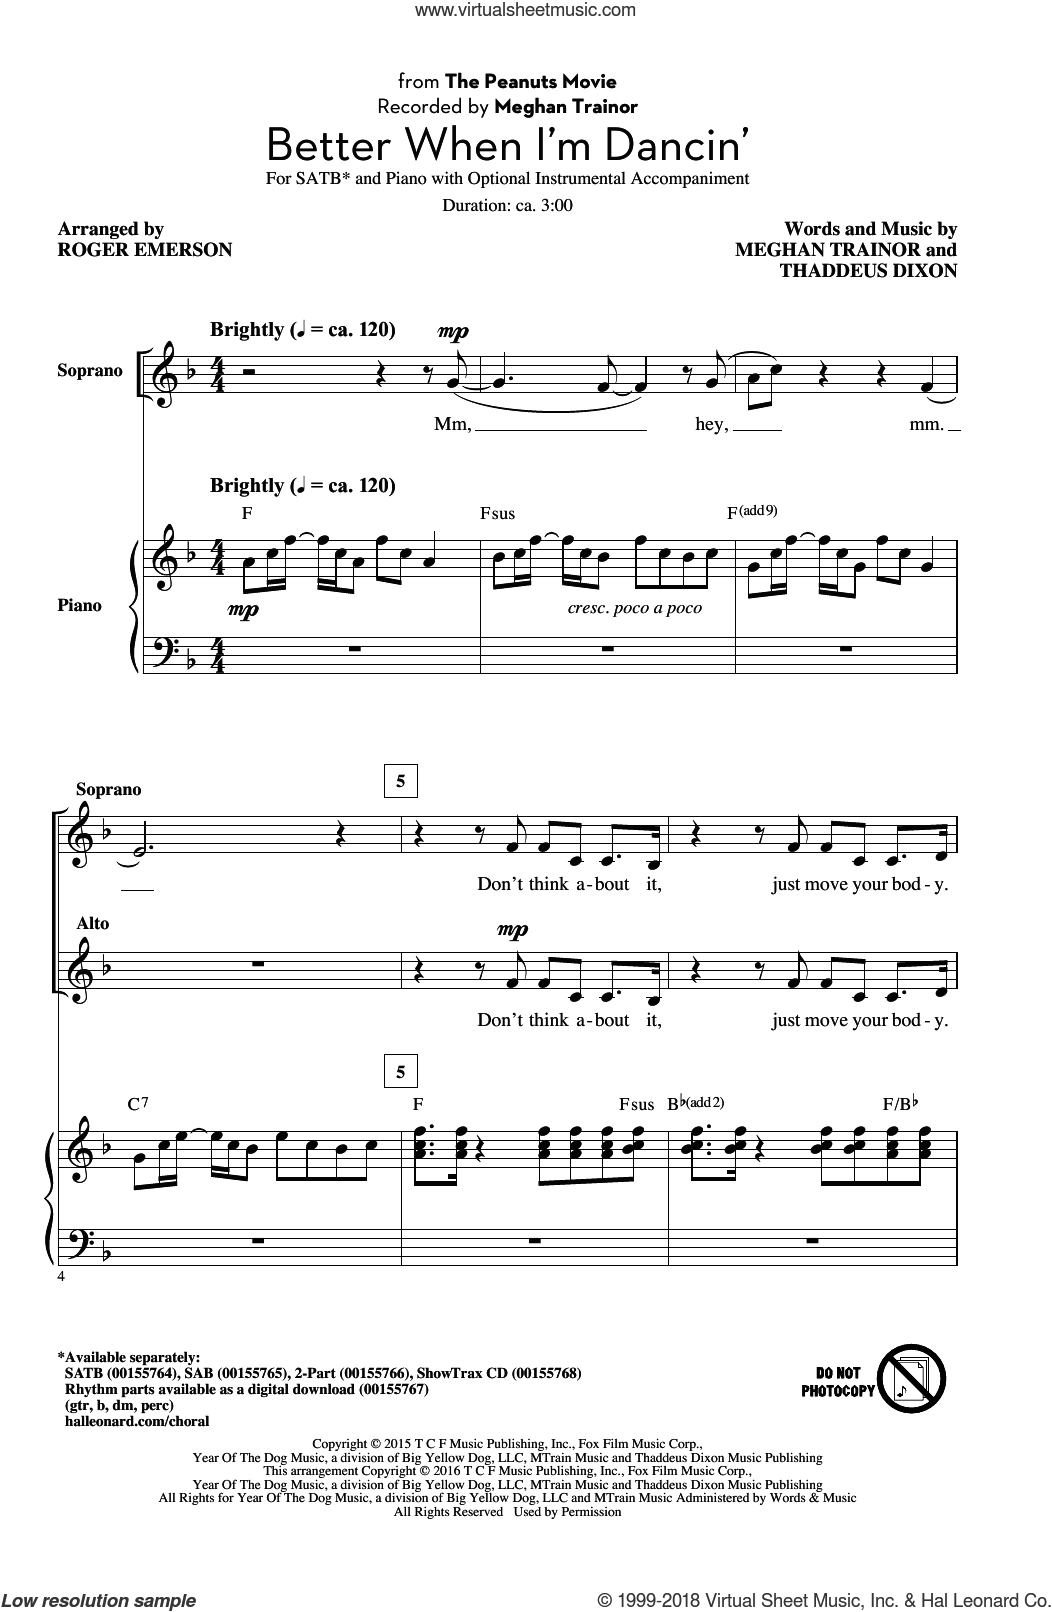 Better When I'm Dancin' sheet music for choir (SATB: soprano, alto, tenor, bass) by Roger Emerson, Meghan Trainor and Thaddeus Dixon, intermediate. Score Image Preview.